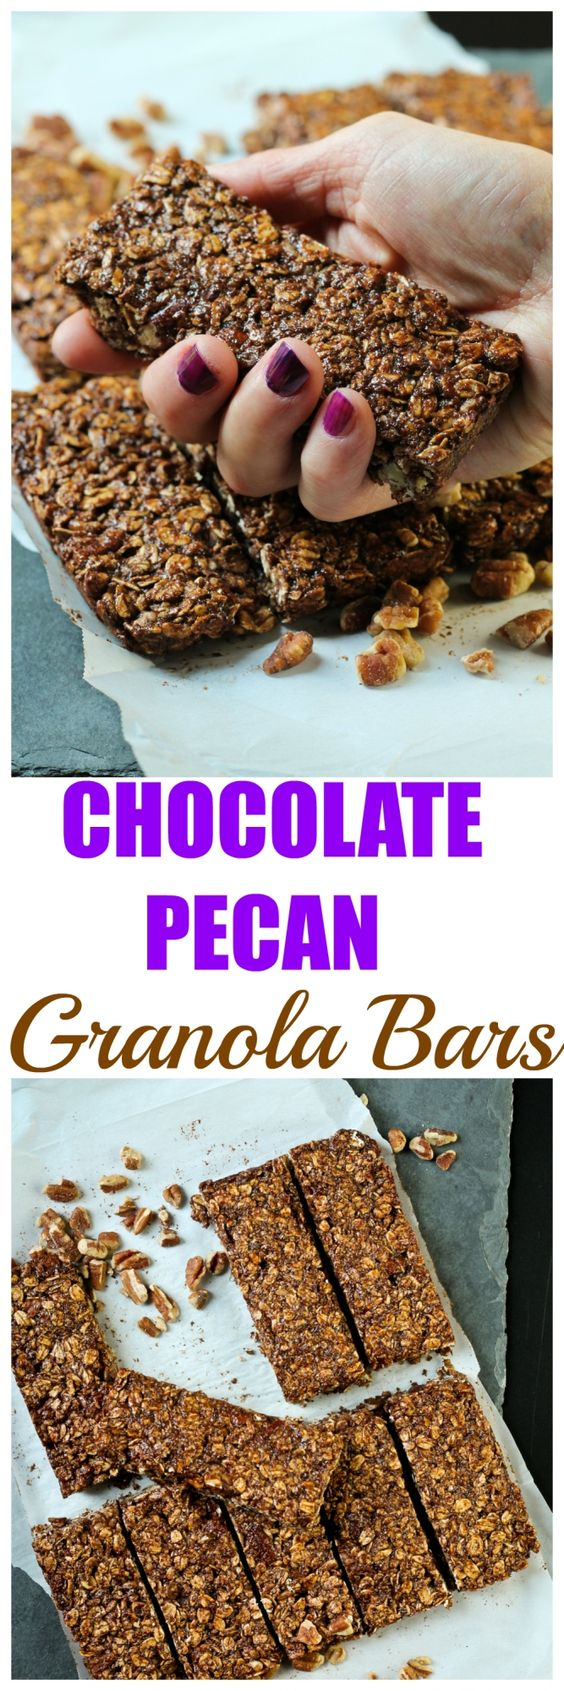 You only need 8 ingredients to make these amazing Chocolate Cinnamon Peanut Butter Granola Bars. They are vegan, gluten-free and no added oils! These are so delicious and made with wholesome ingredients, that you will never need to buy preservative a